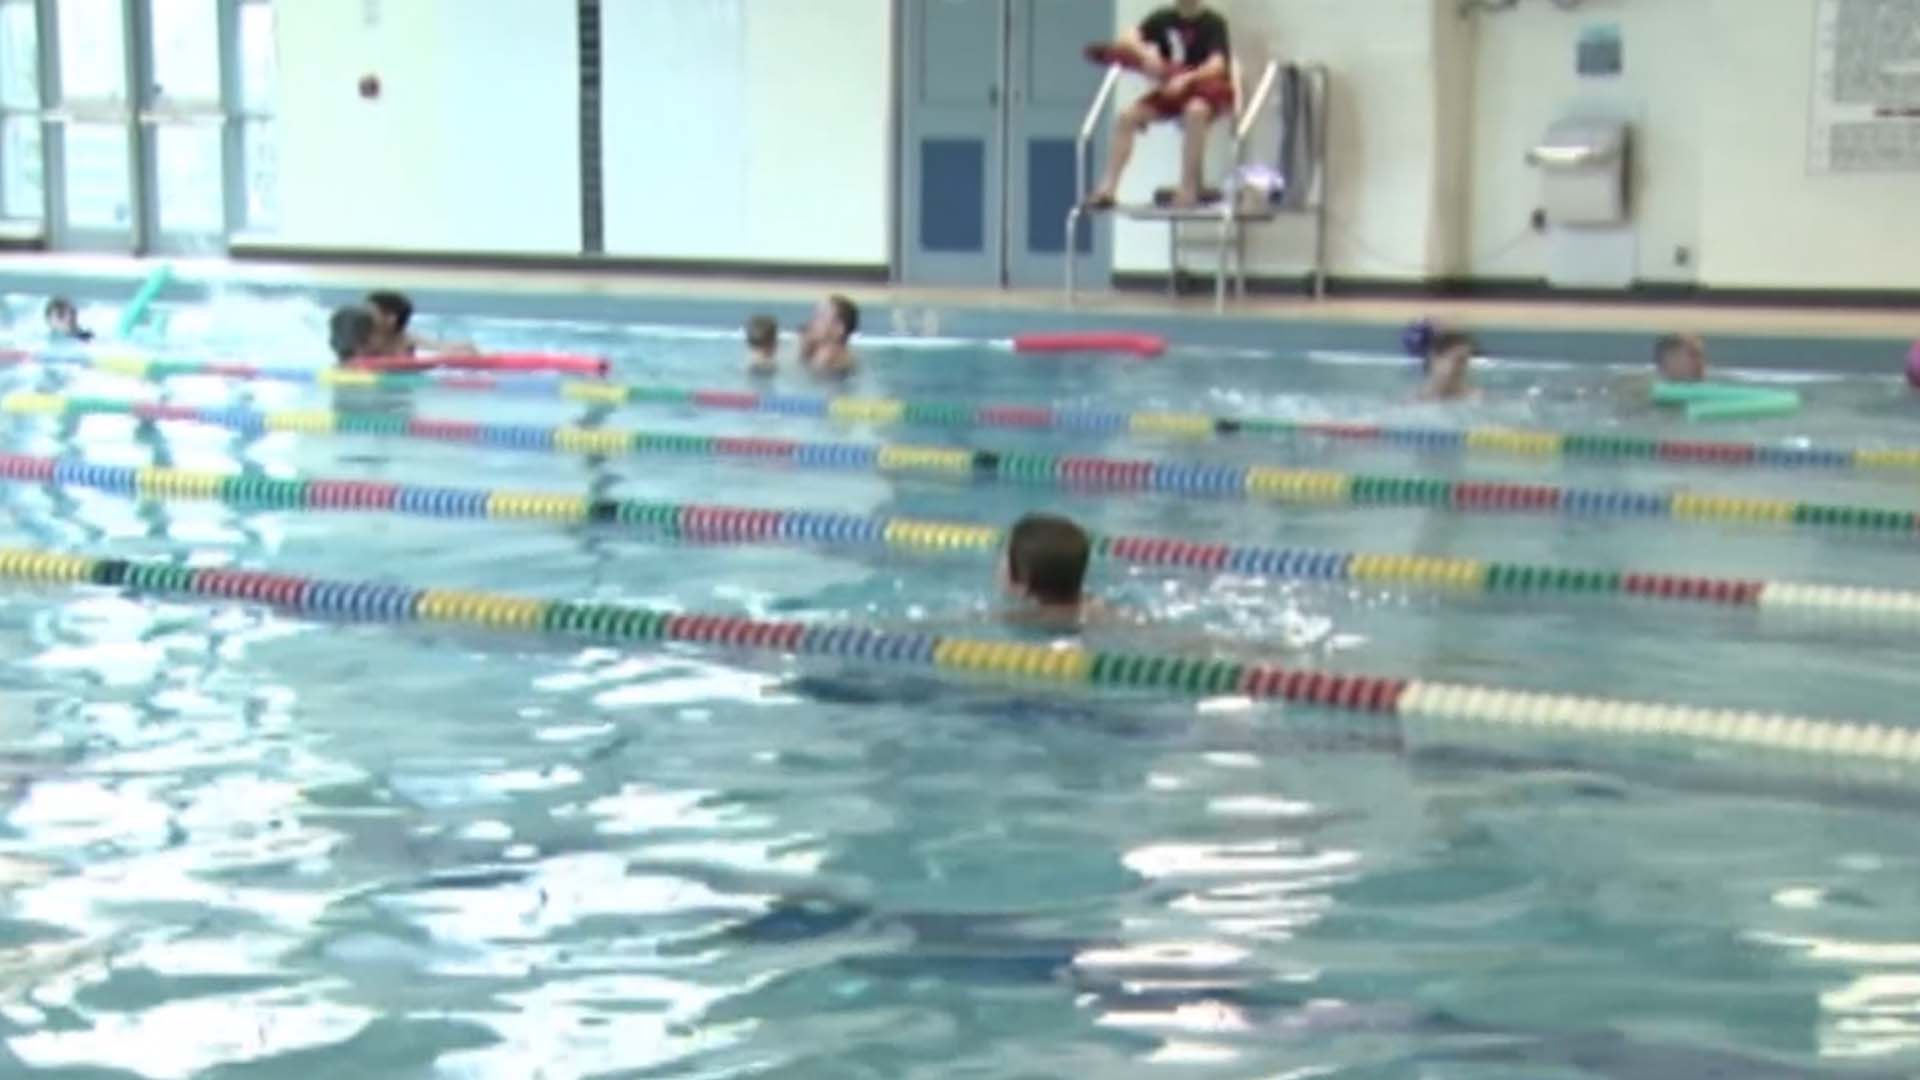 CDC issues warning on fecal parasite in pools